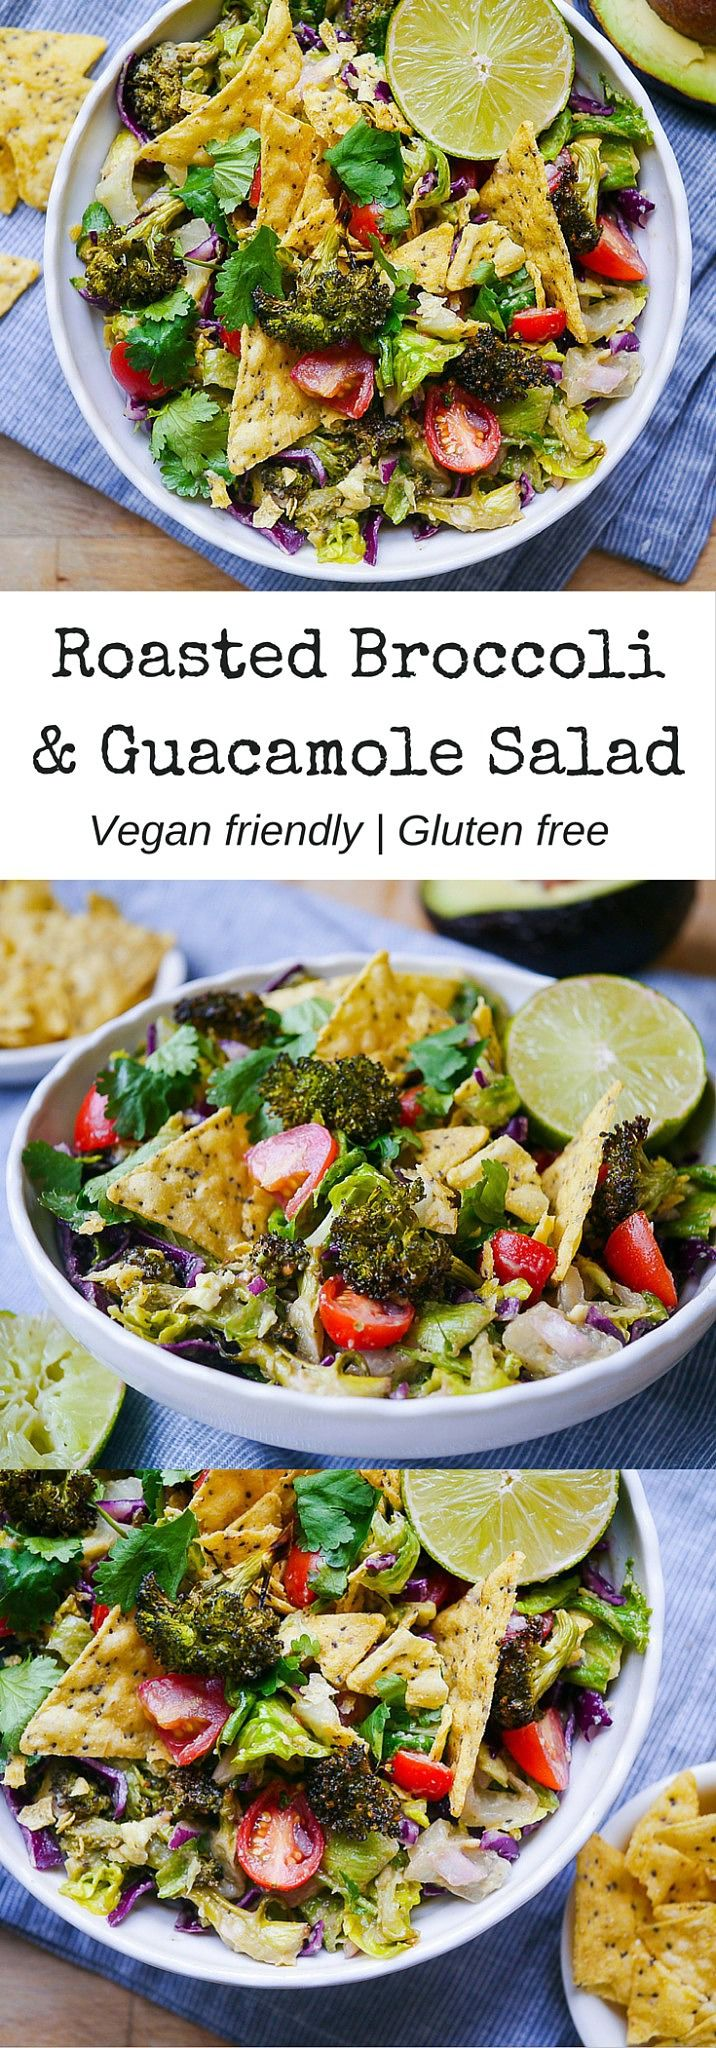 Roasted Broccoli & Guacamole Salad | When you want a huge bowl of guacamole and chips but probably need some healthy greens too - have both! Gluten free and vegan friendly. Delicious! | nourisheveryday.com